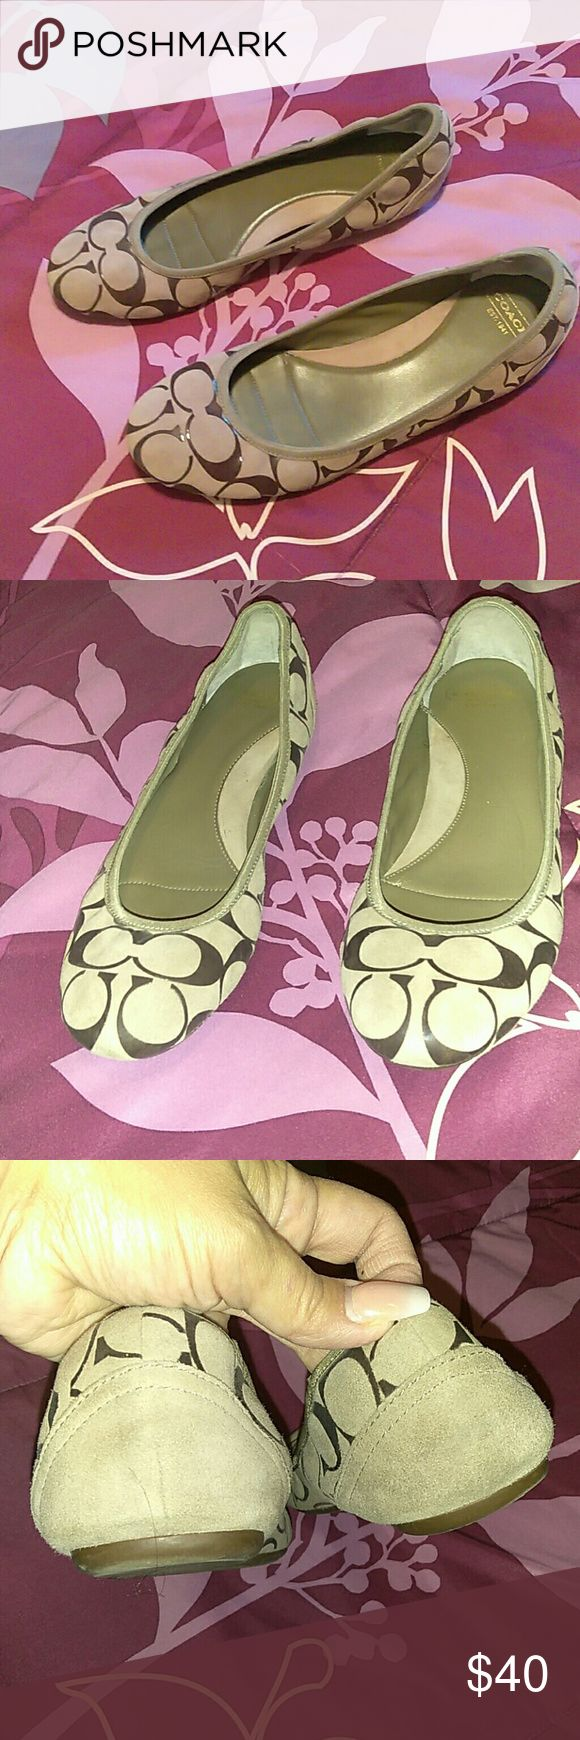 Coach flats Used condition. Minor leather cracks inside of flats by toes. Outside is almost excellent condition. Leather and authentic coach flats. Coach Shoes